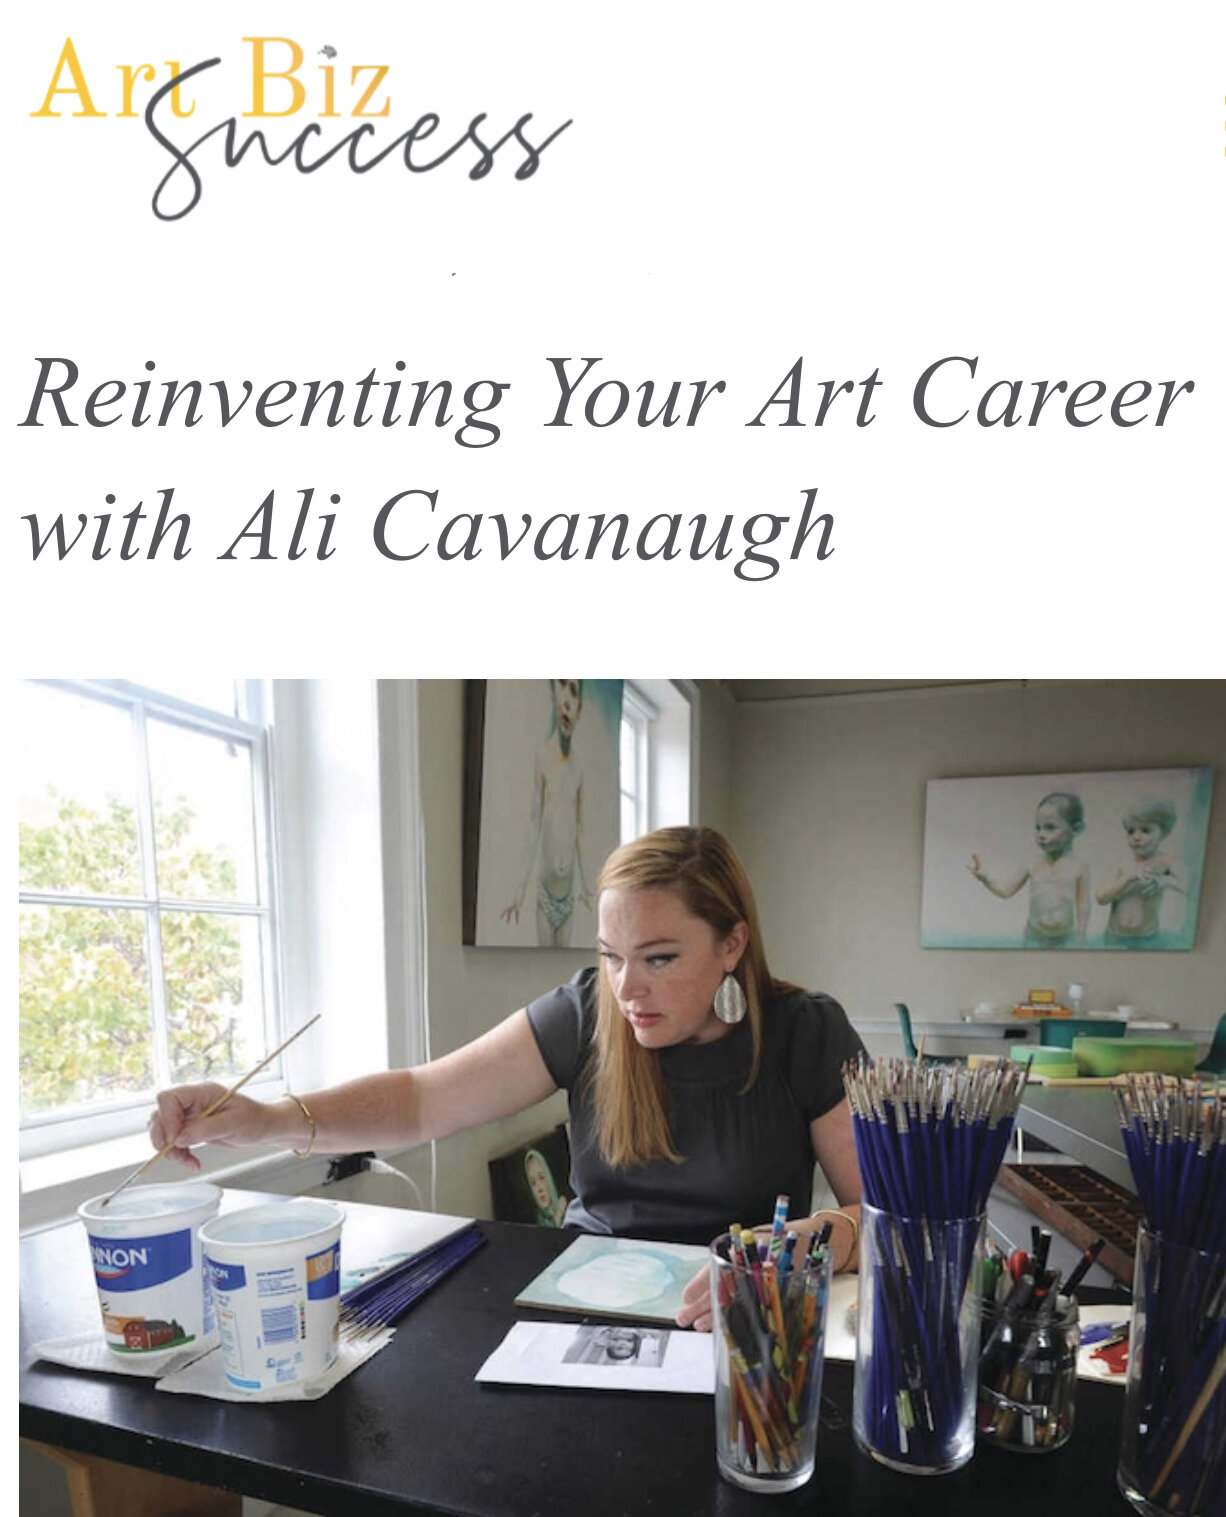 Art Biz Success with Alyson Stanfield - In 2014, Ali Cavanaugh had 11 galleries representing her work. It was all she could do to keep up with demand. Then she did something drastic:she recalled them all. She asked every gallery to return what they had in inventory she decided to be more proactive about what she wanted for her life and art. LISTEN to the full story